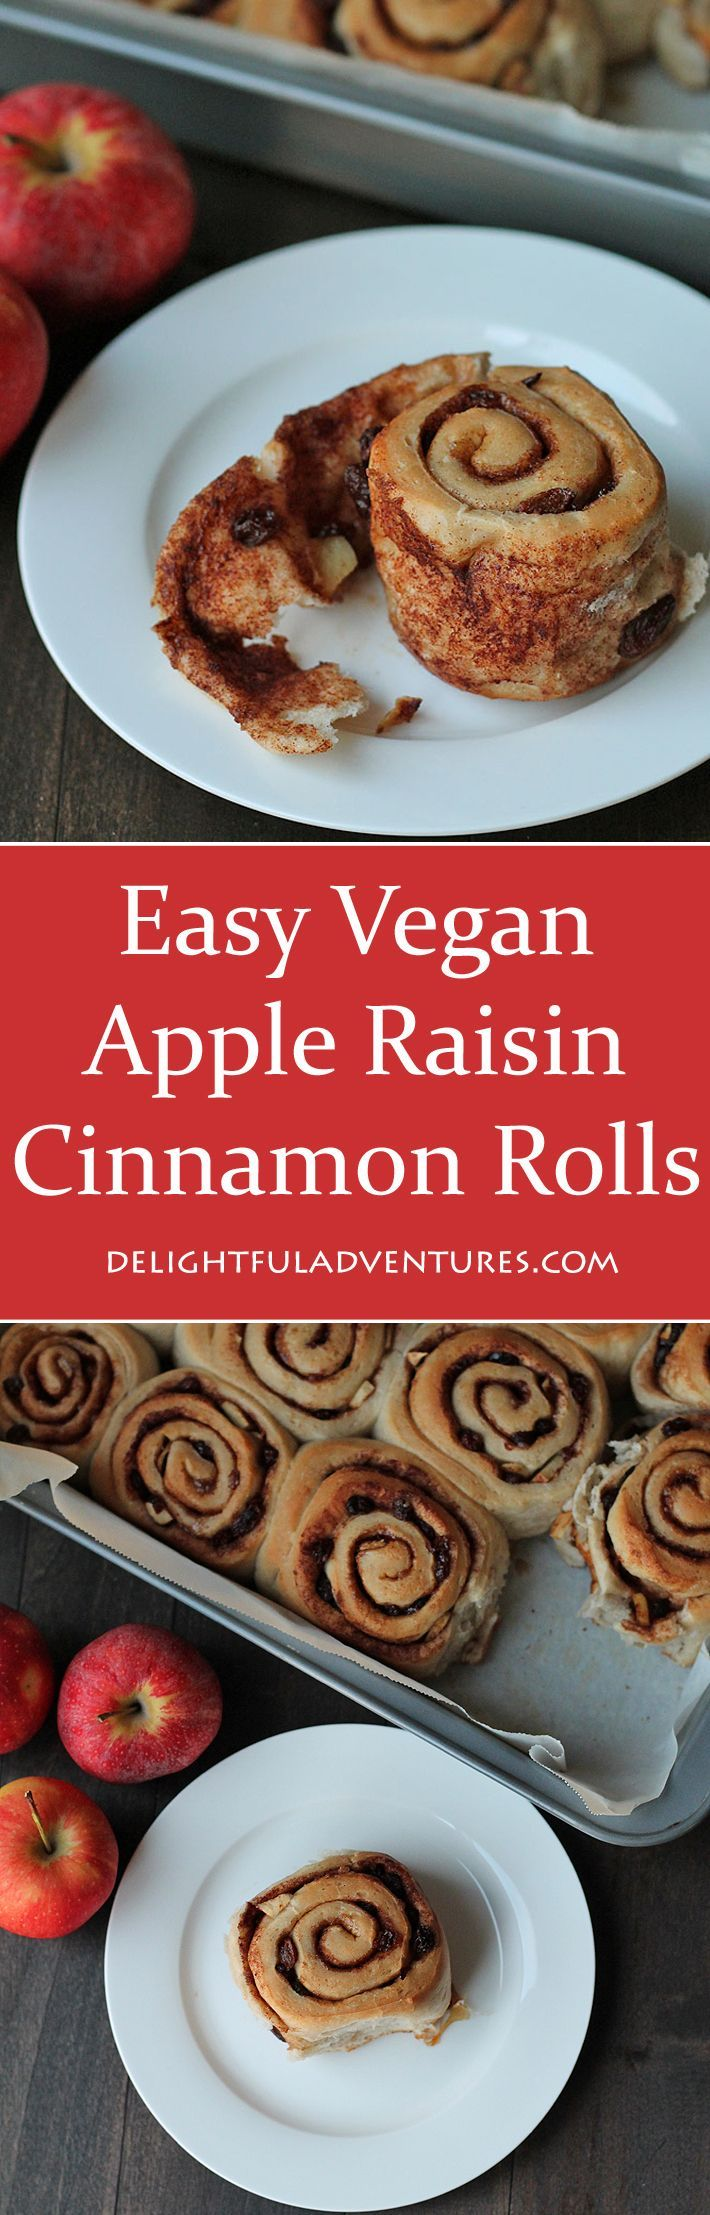 These easy vegan apple raisin cinnamon rolls are tender, not too sweet, and are bursting with flavour. They're the perfect companion for a cup of tea. via @delighfuladv